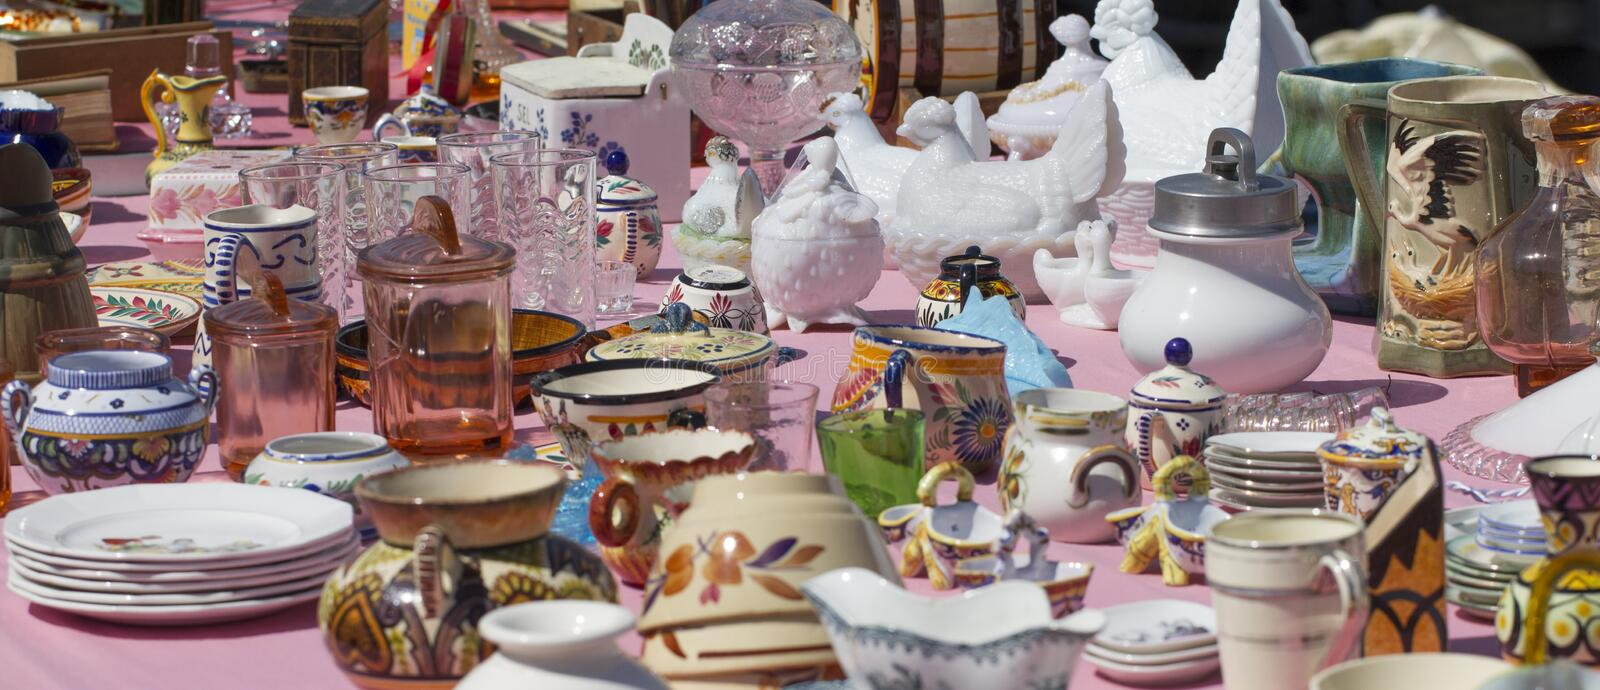 Antique bric-a-brac at flea market royalty free stock image